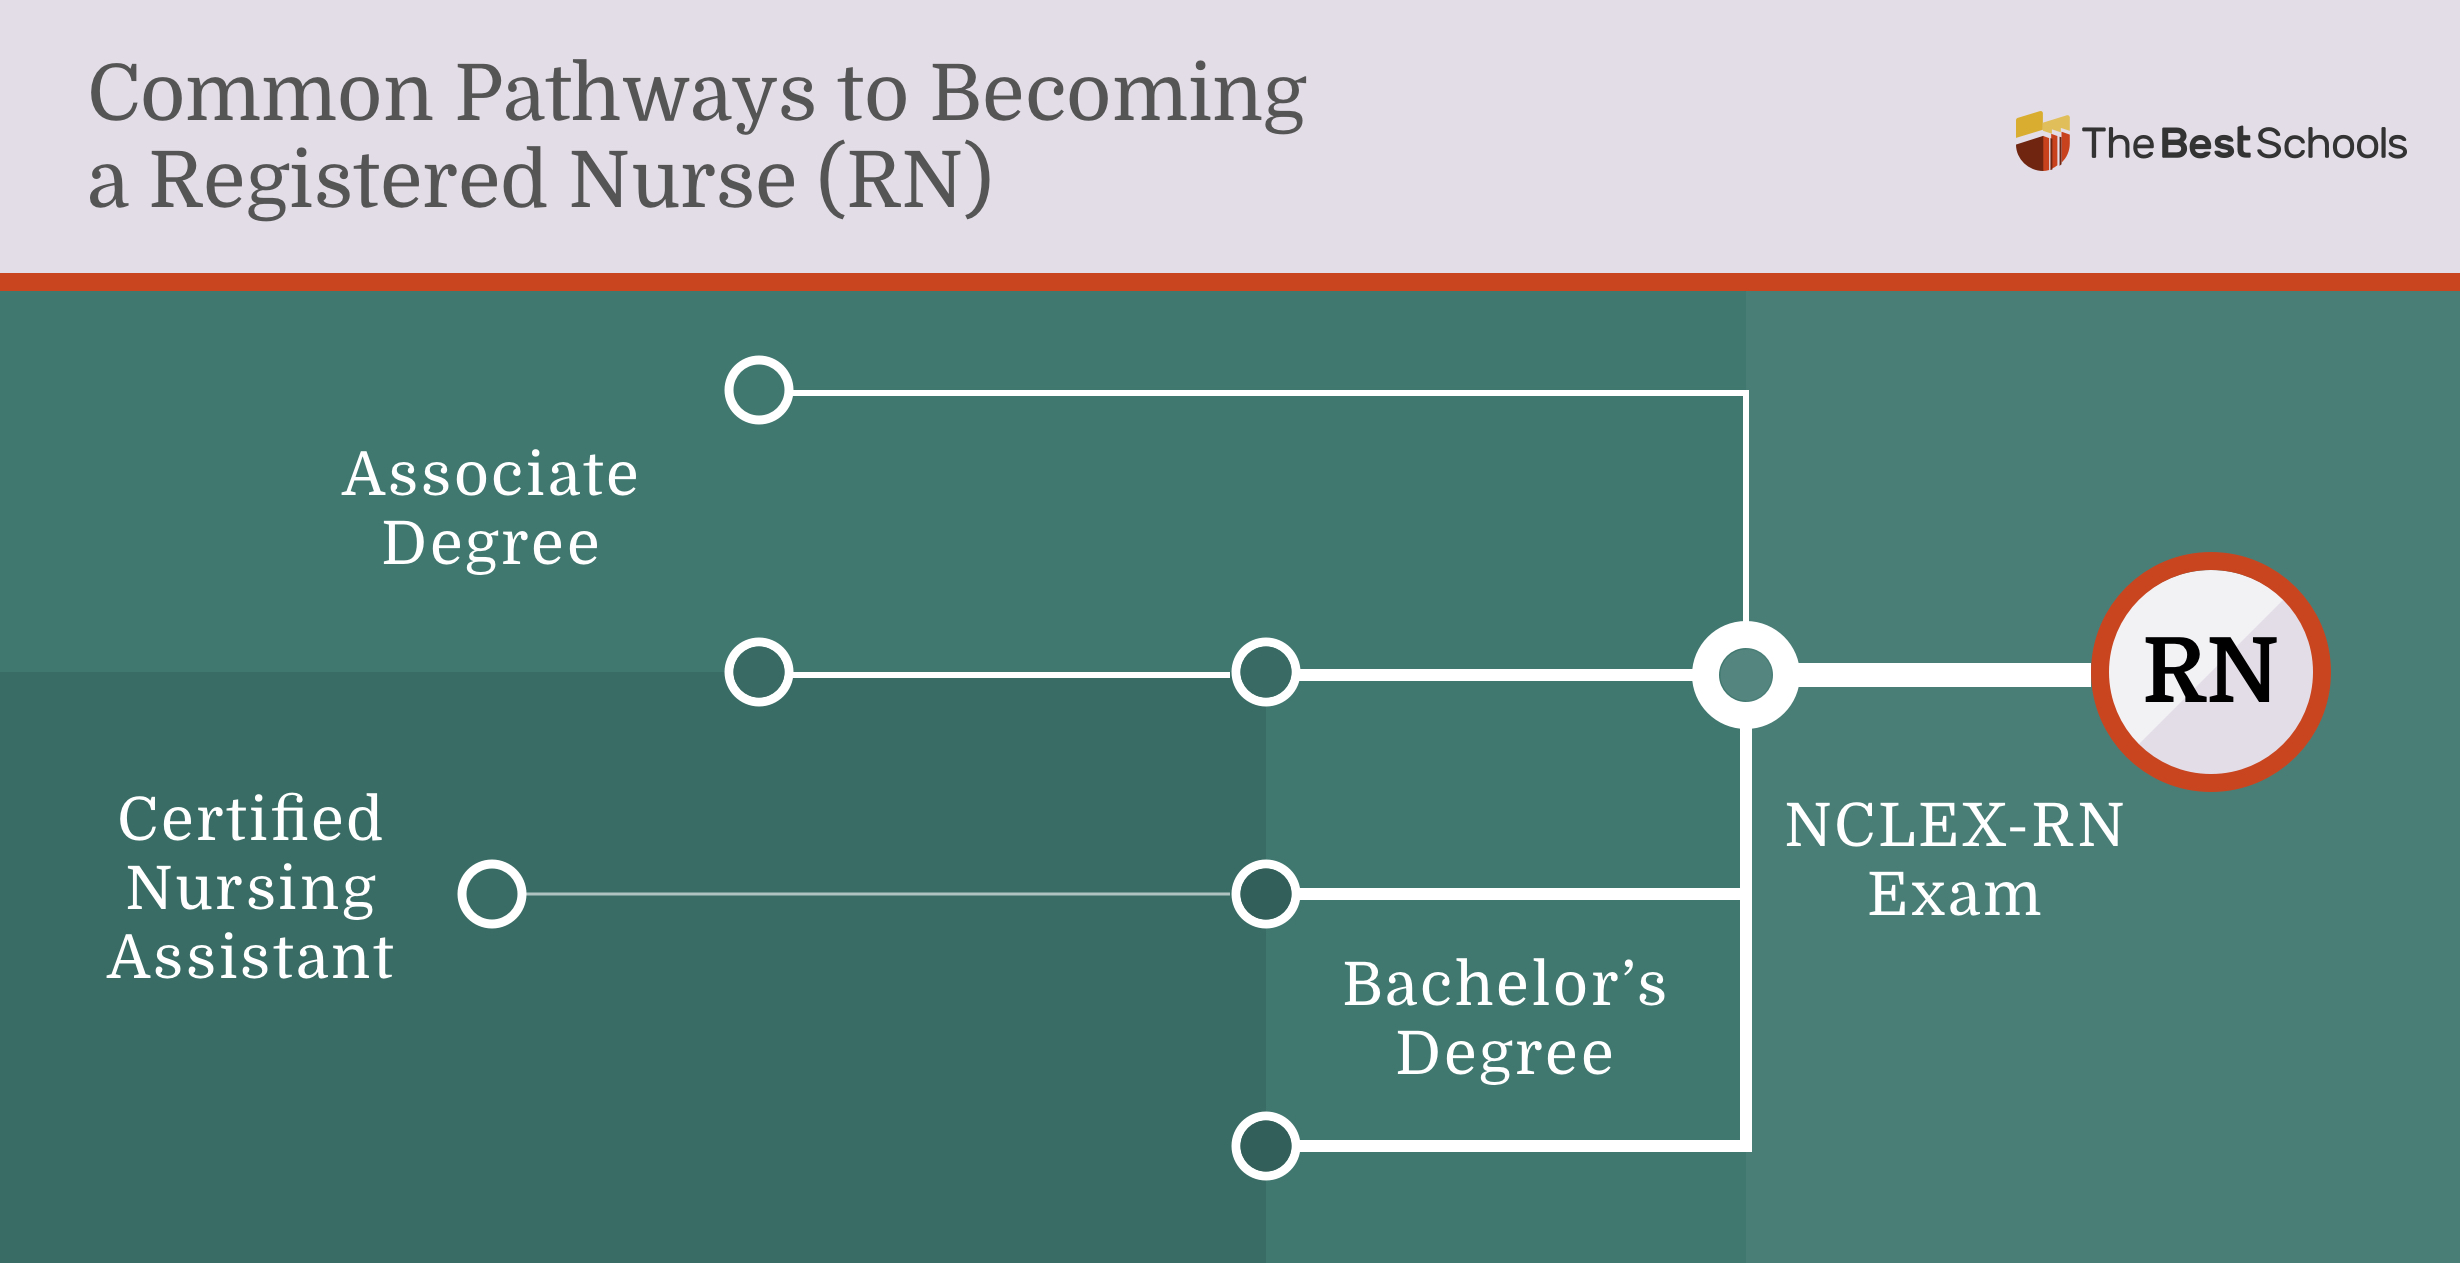 Image titled: Common Pathways to Becoming a Registered Nurse (RN)